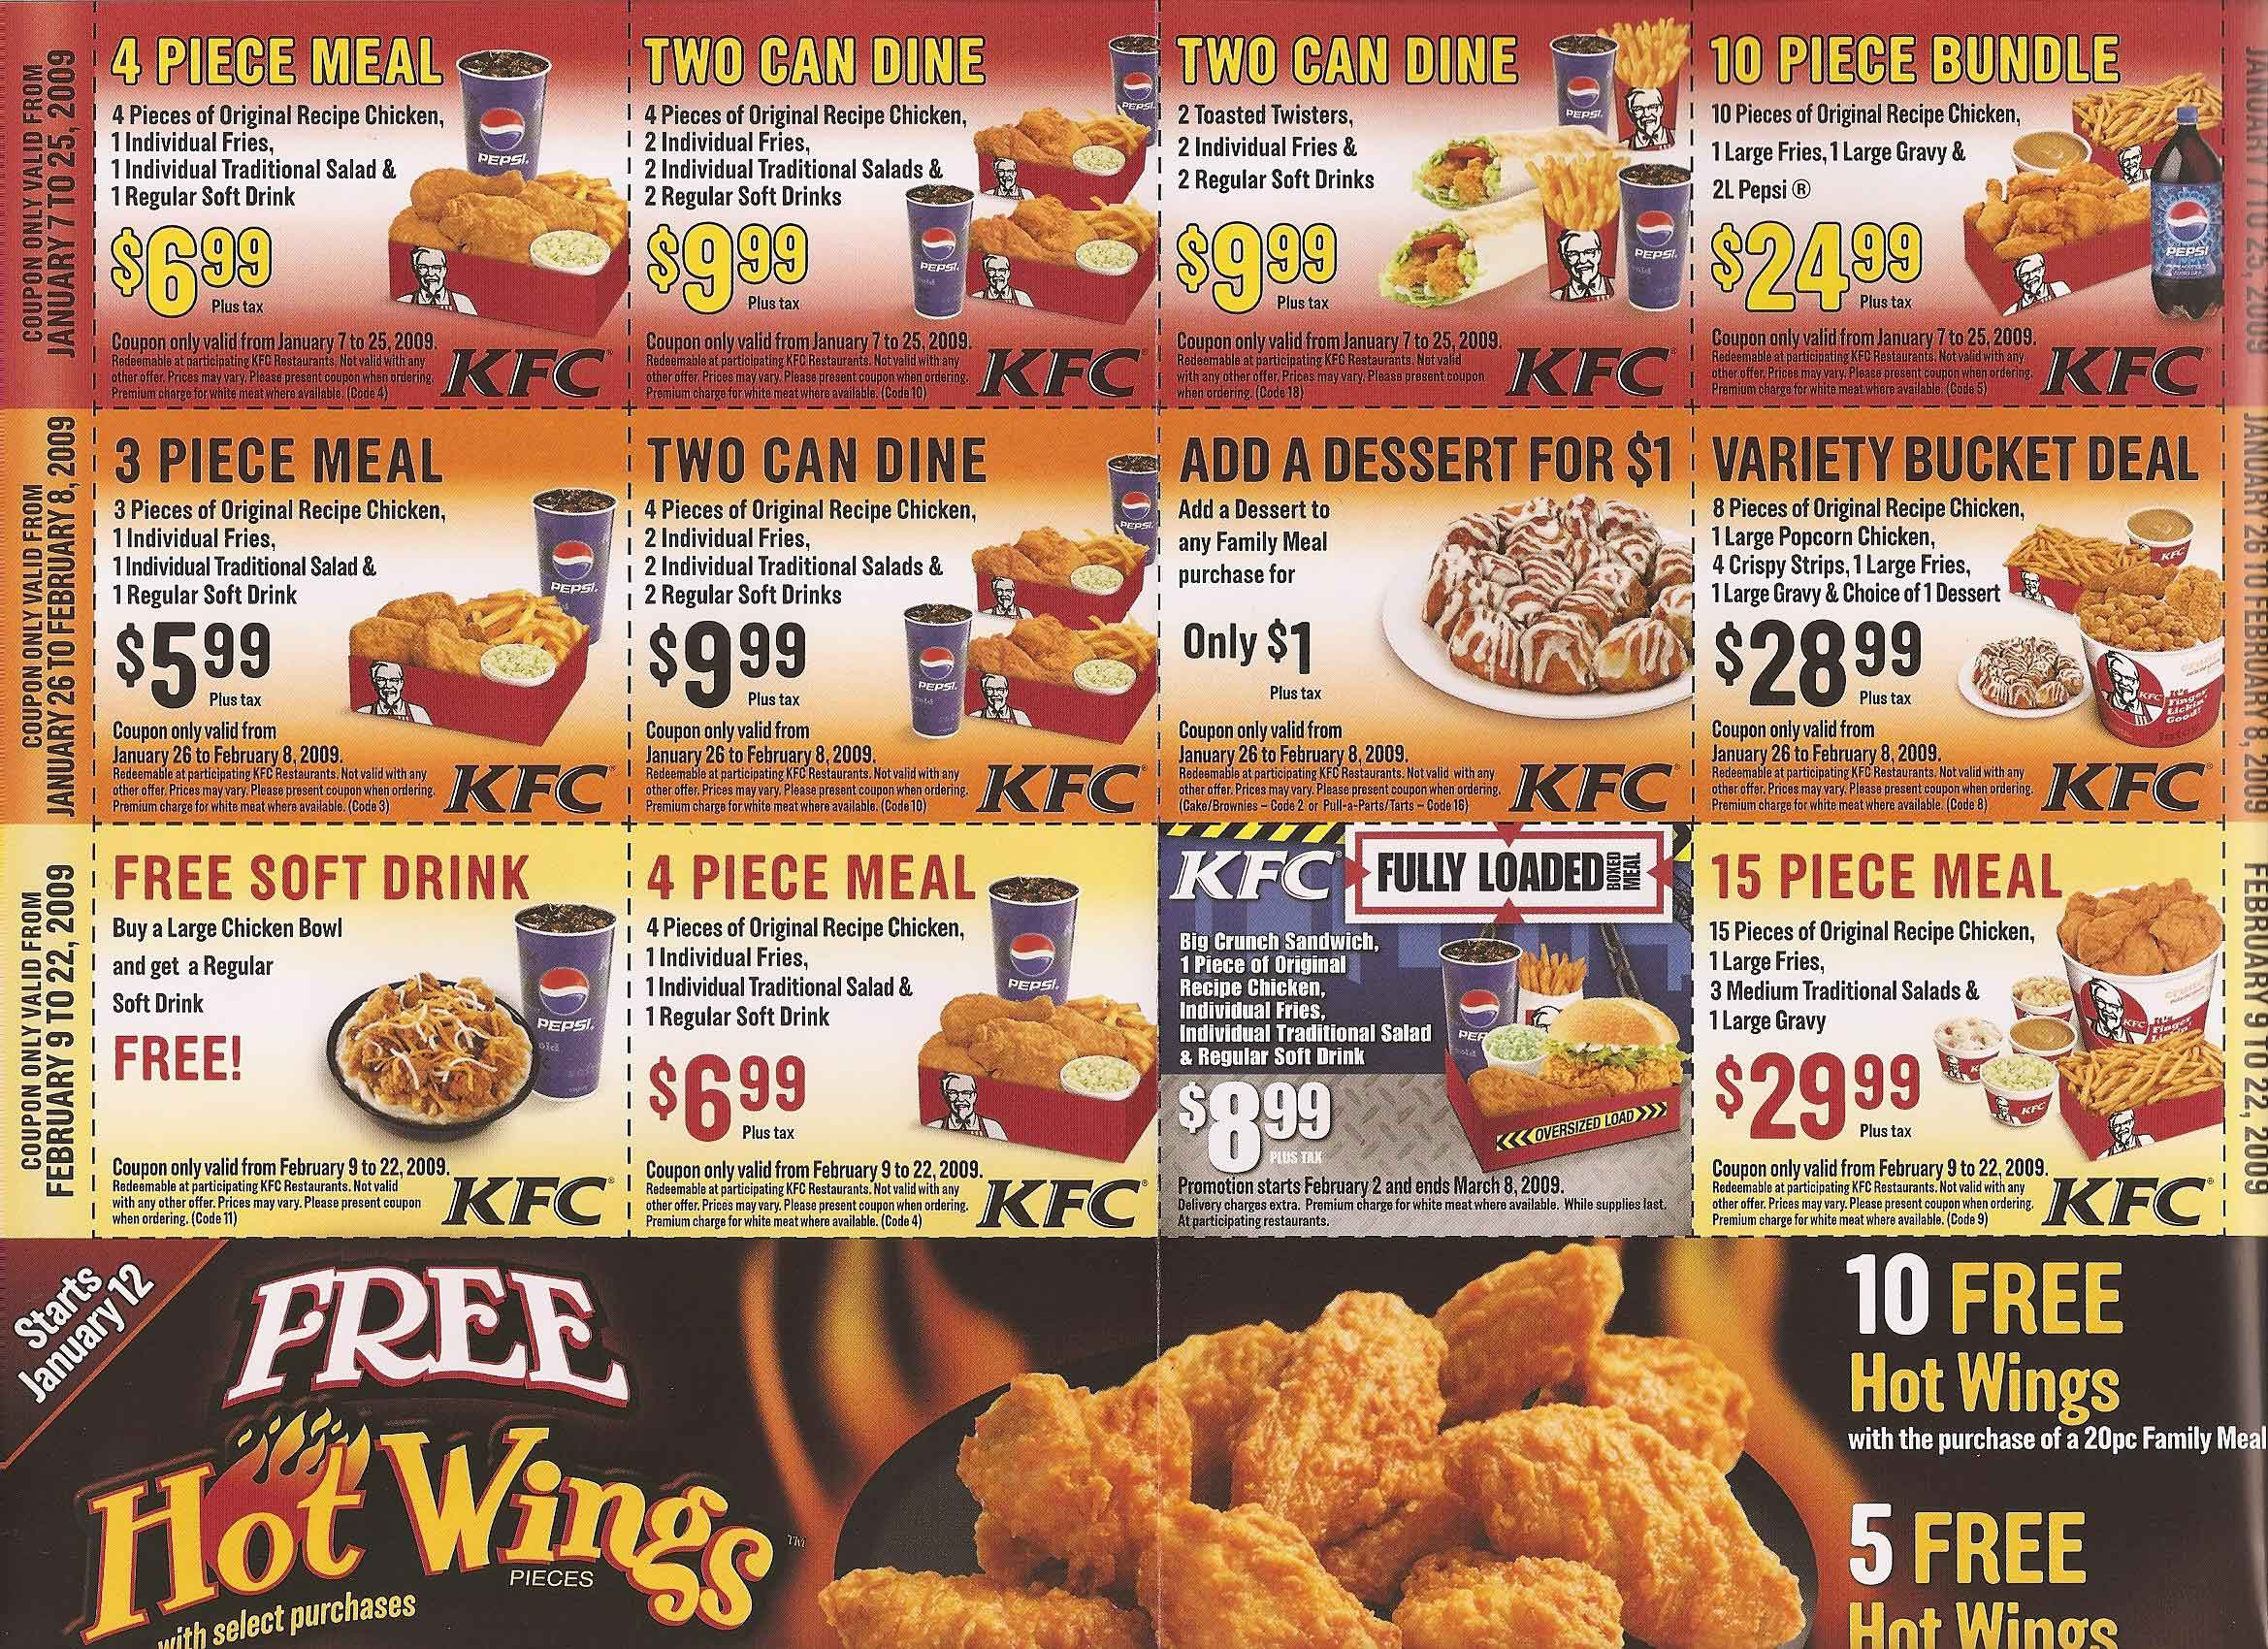 KFC Canada Menu Prices August 8 - September 25, KFC Menu Prices August 8 - September 25, is currently available – Find the latest menu prices for KFC. And Also, save with coupons for some pretty amazing money saving deals from KFC.